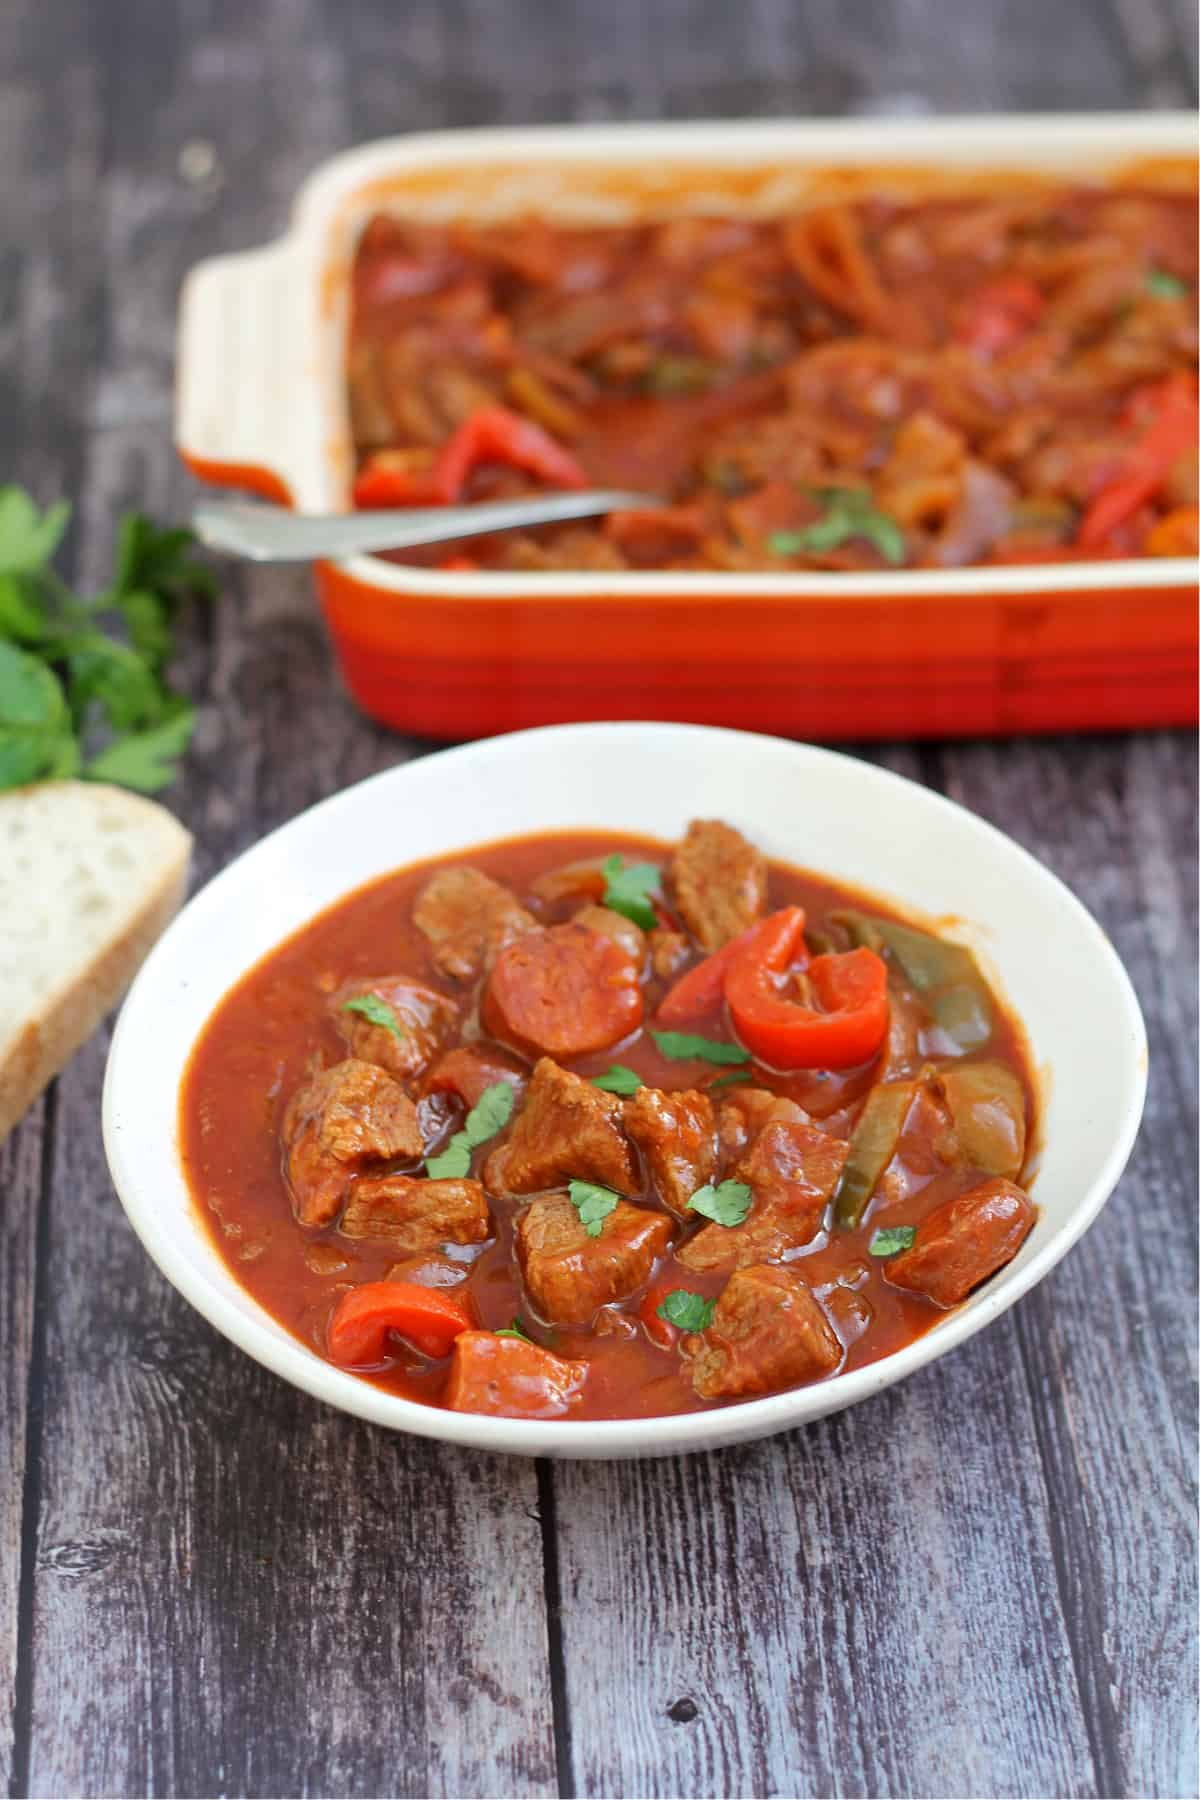 Bowl of beef stew with serving dish behind and bread to the side.